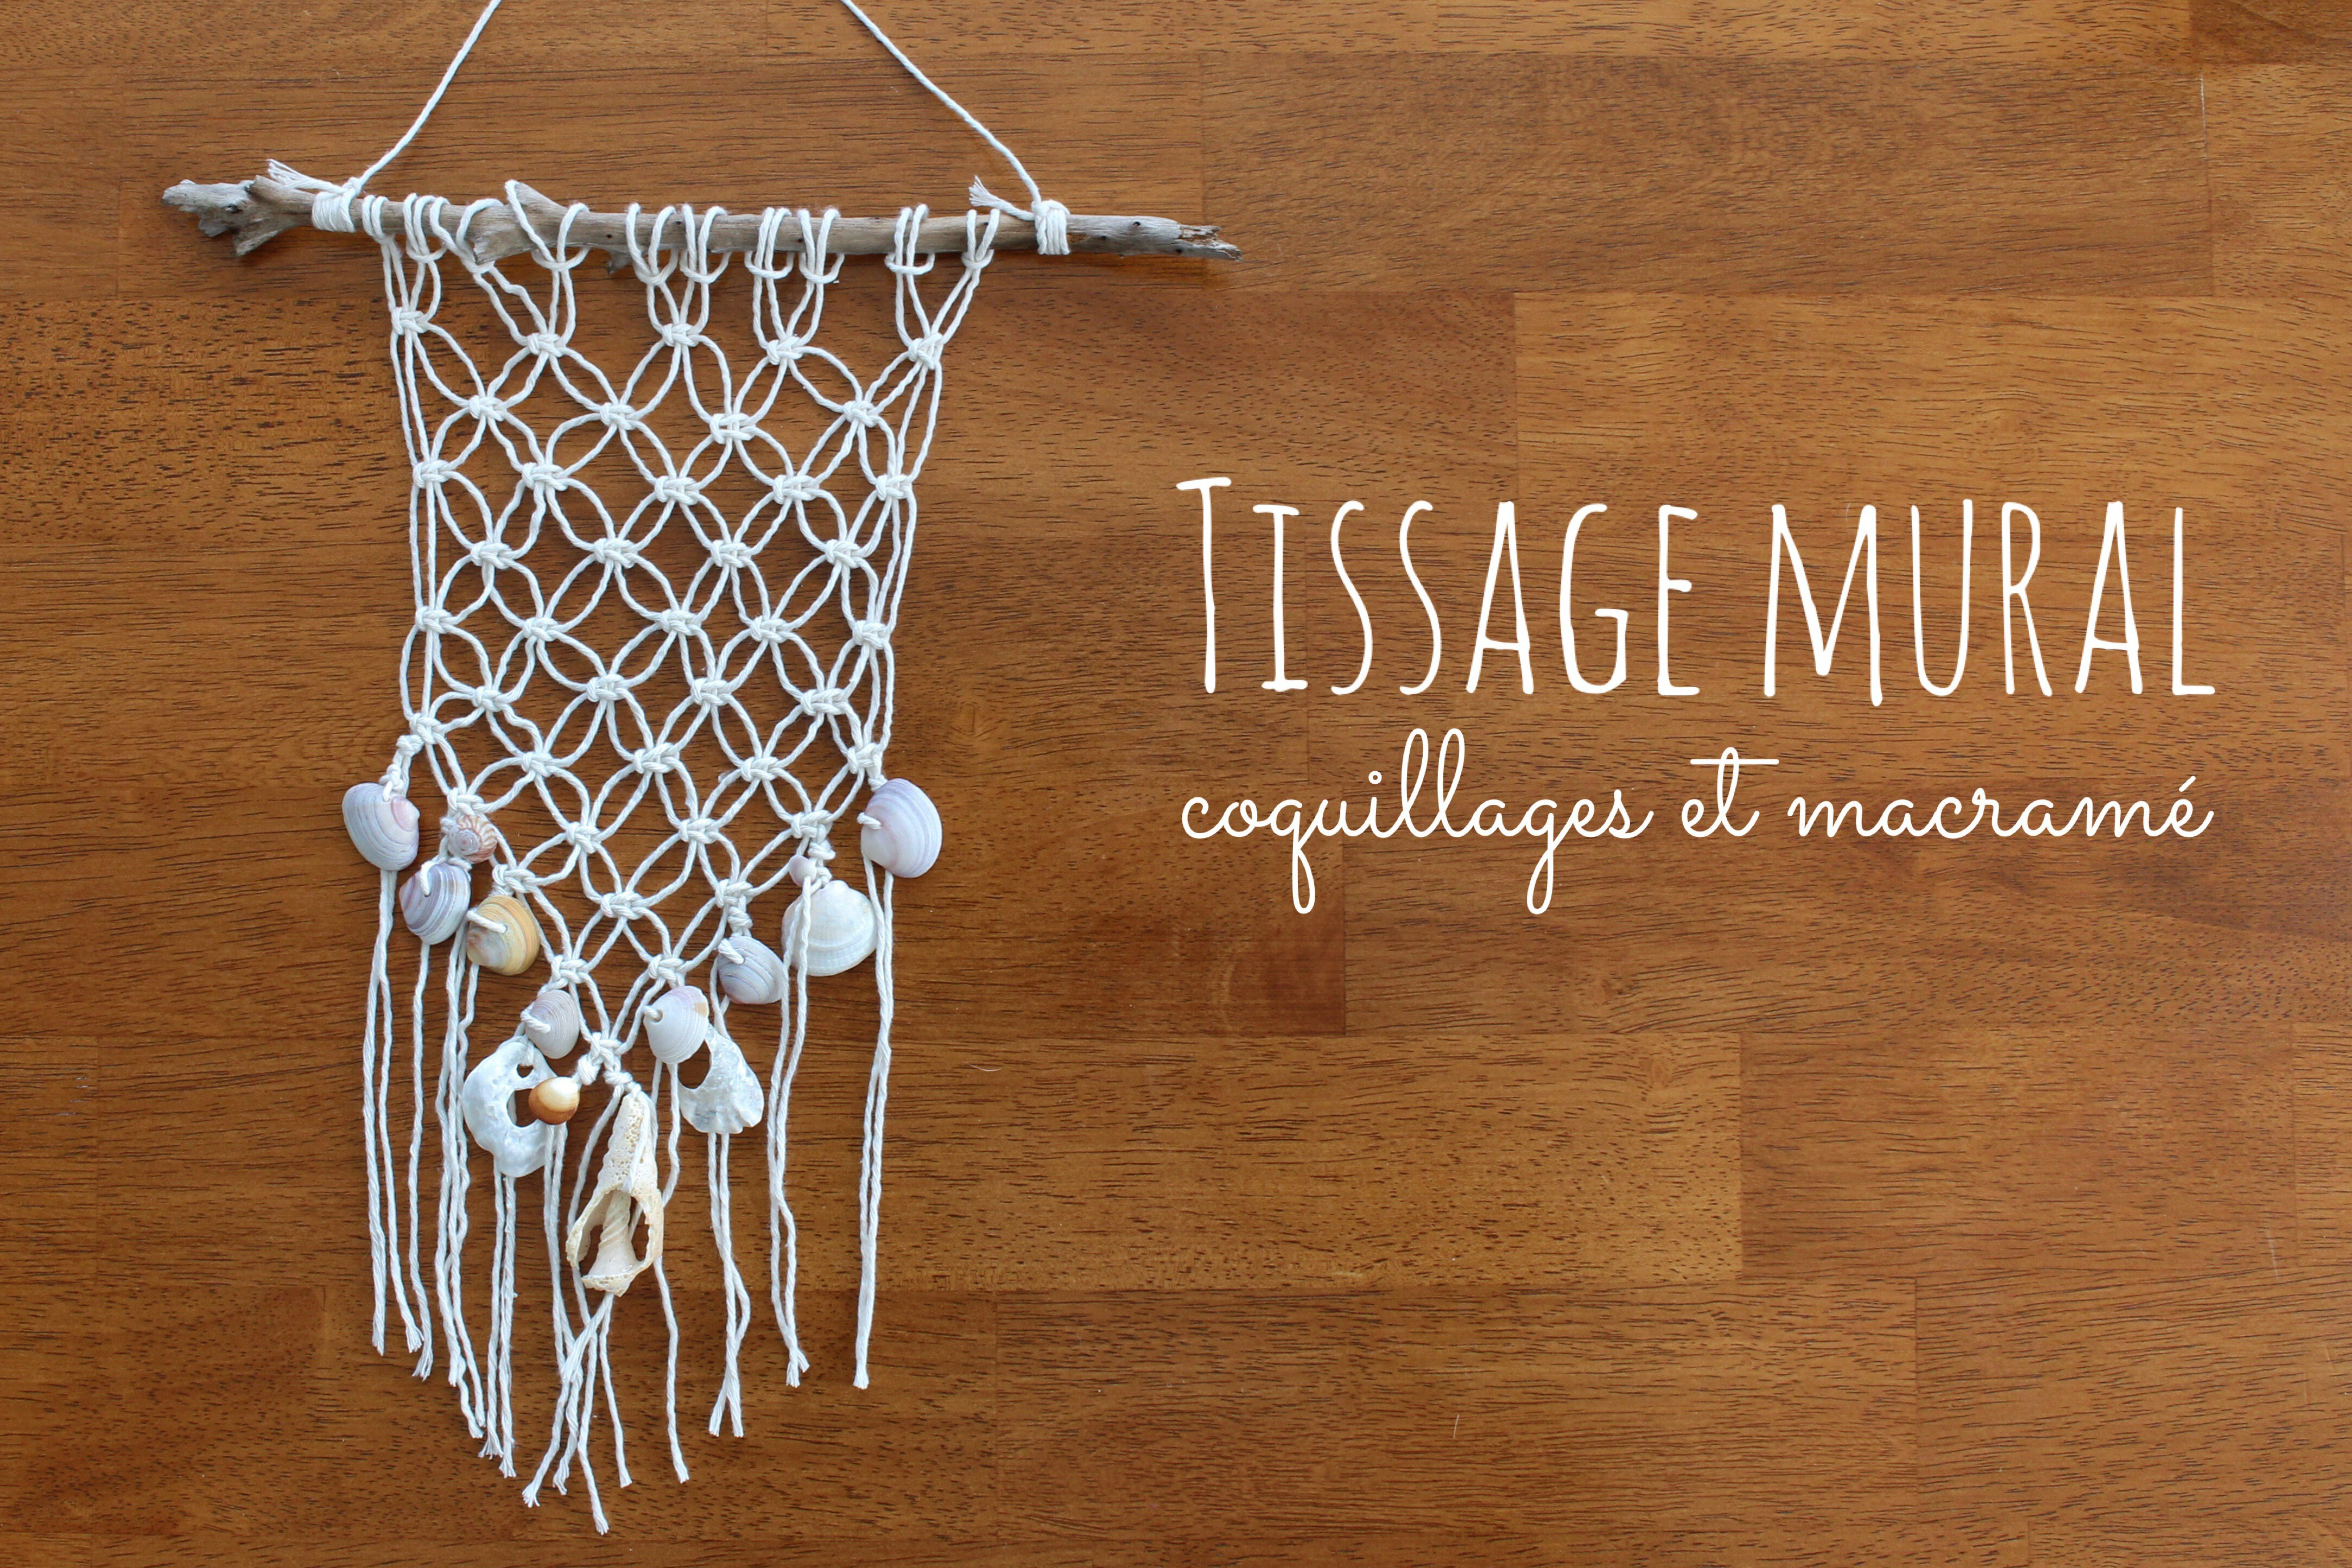 diy tissage mural macram et coquillages mes derni res lubies. Black Bedroom Furniture Sets. Home Design Ideas